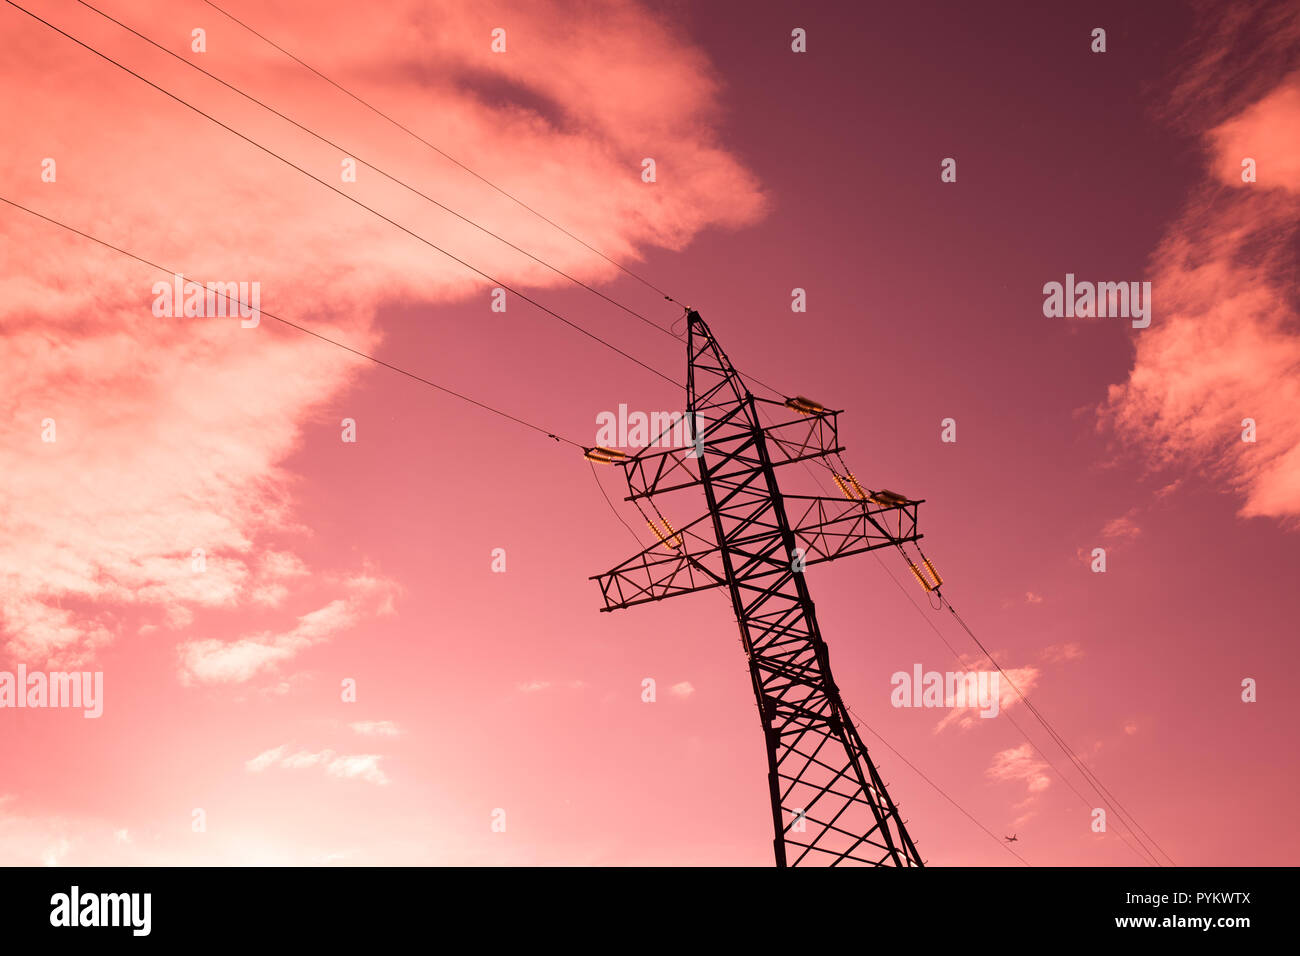 bottom view of the tower of power grids on pink sky background, High voltage, Electricity concept - Stock Image